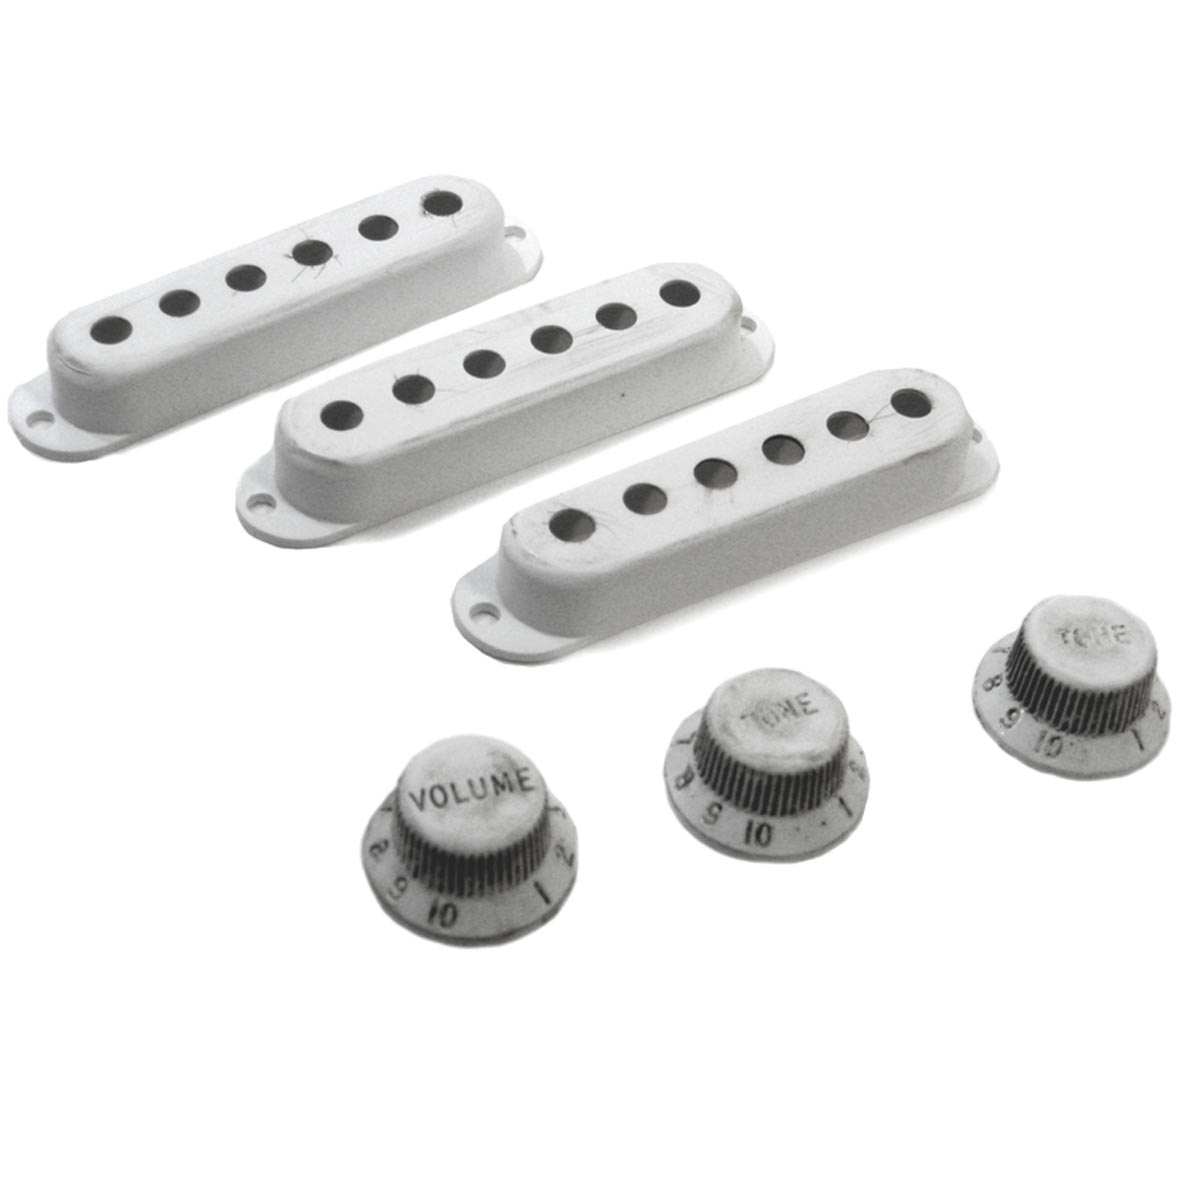 Relic Stratocaster Knobs / Pickup Covers - WHITE